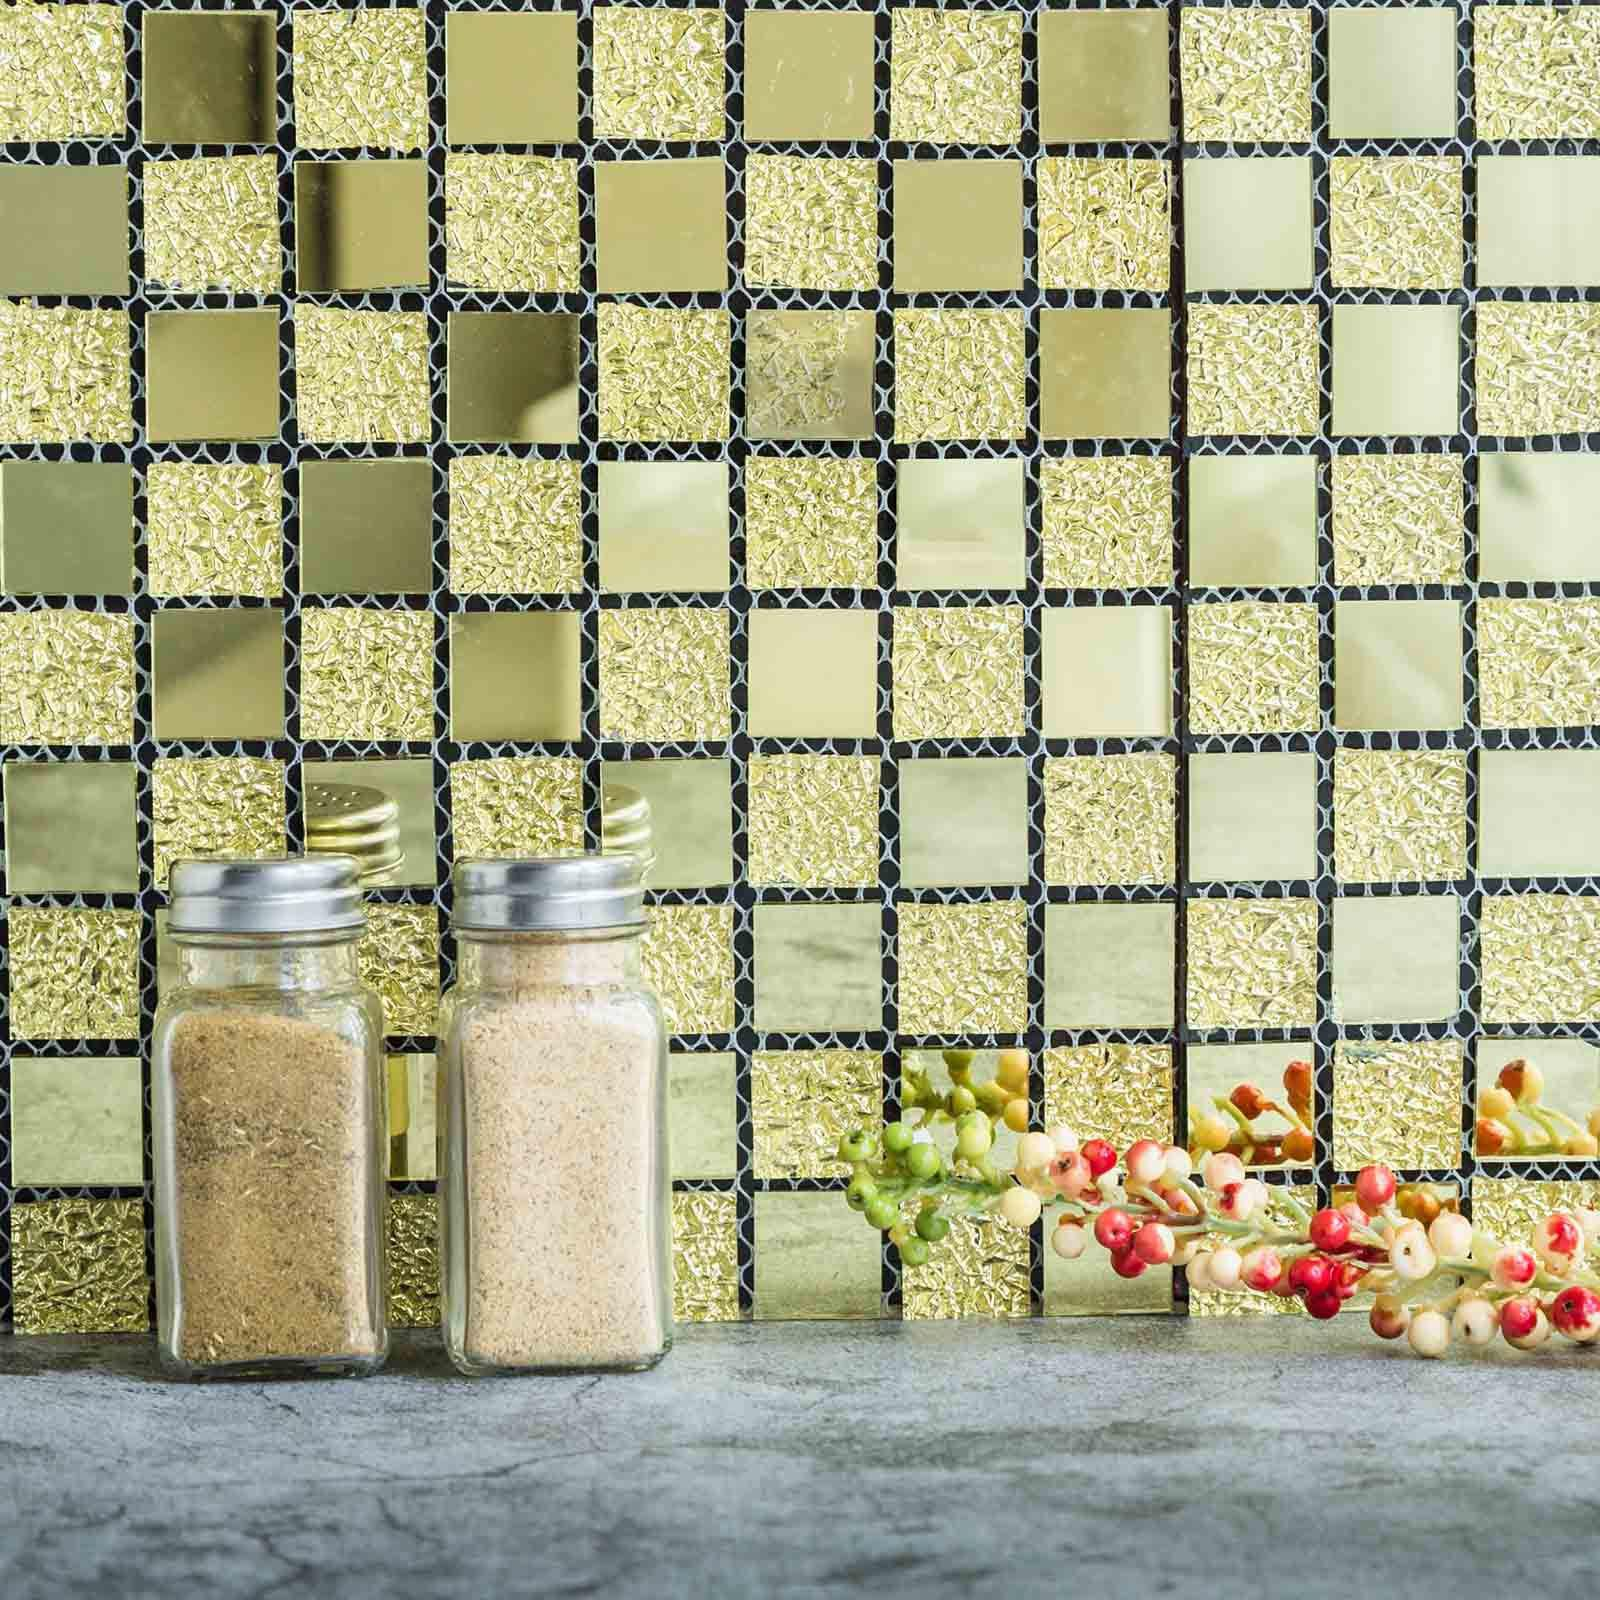 10 Pack Self-adhesive Gold Backsplash Peel & Stick Colored Glass ...